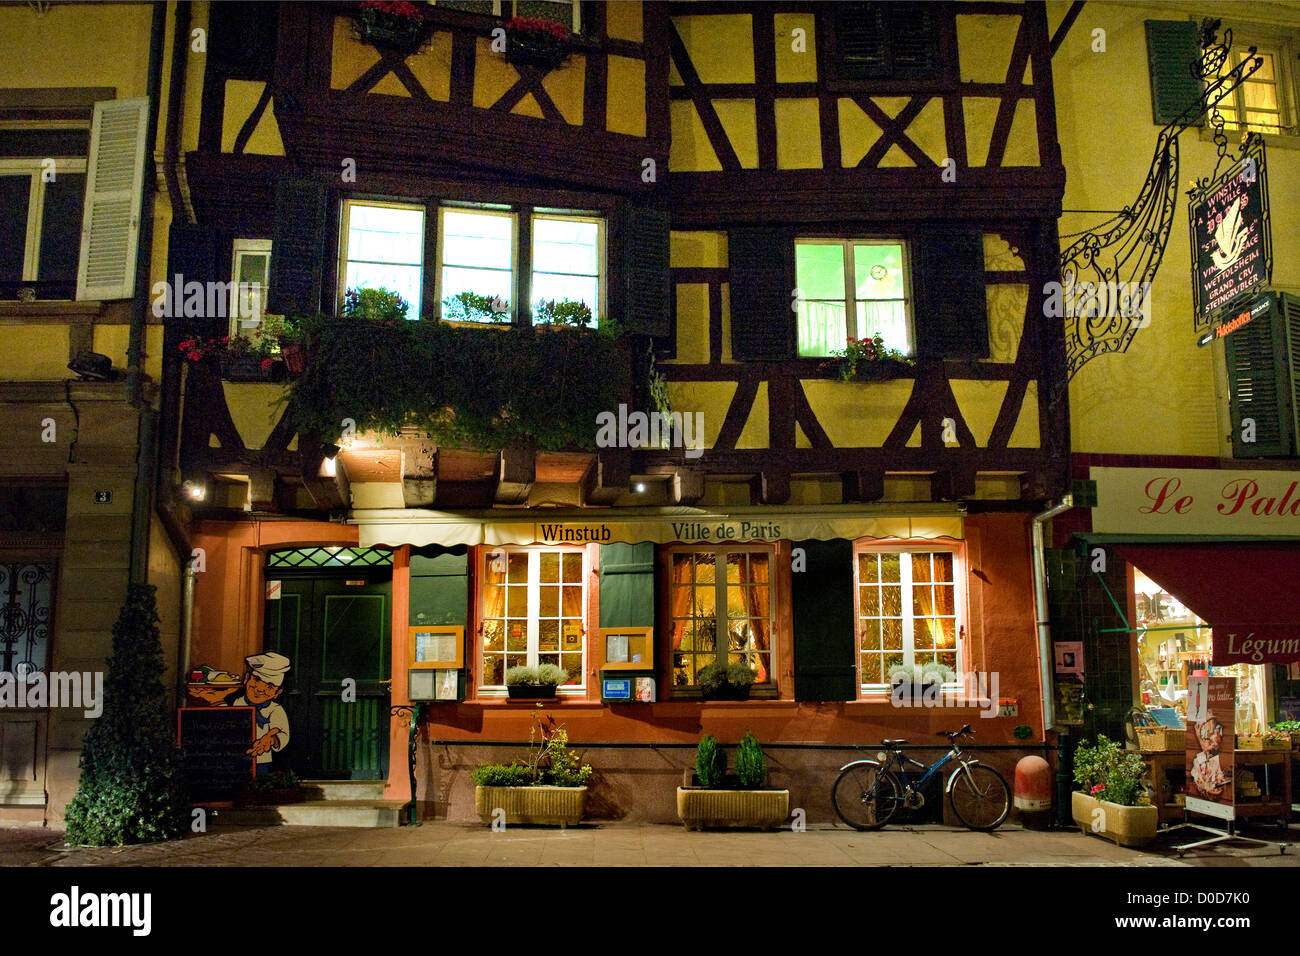 france alsace colmar ville de paris restaurant stock photo royalty free image 51922500 alamy. Black Bedroom Furniture Sets. Home Design Ideas